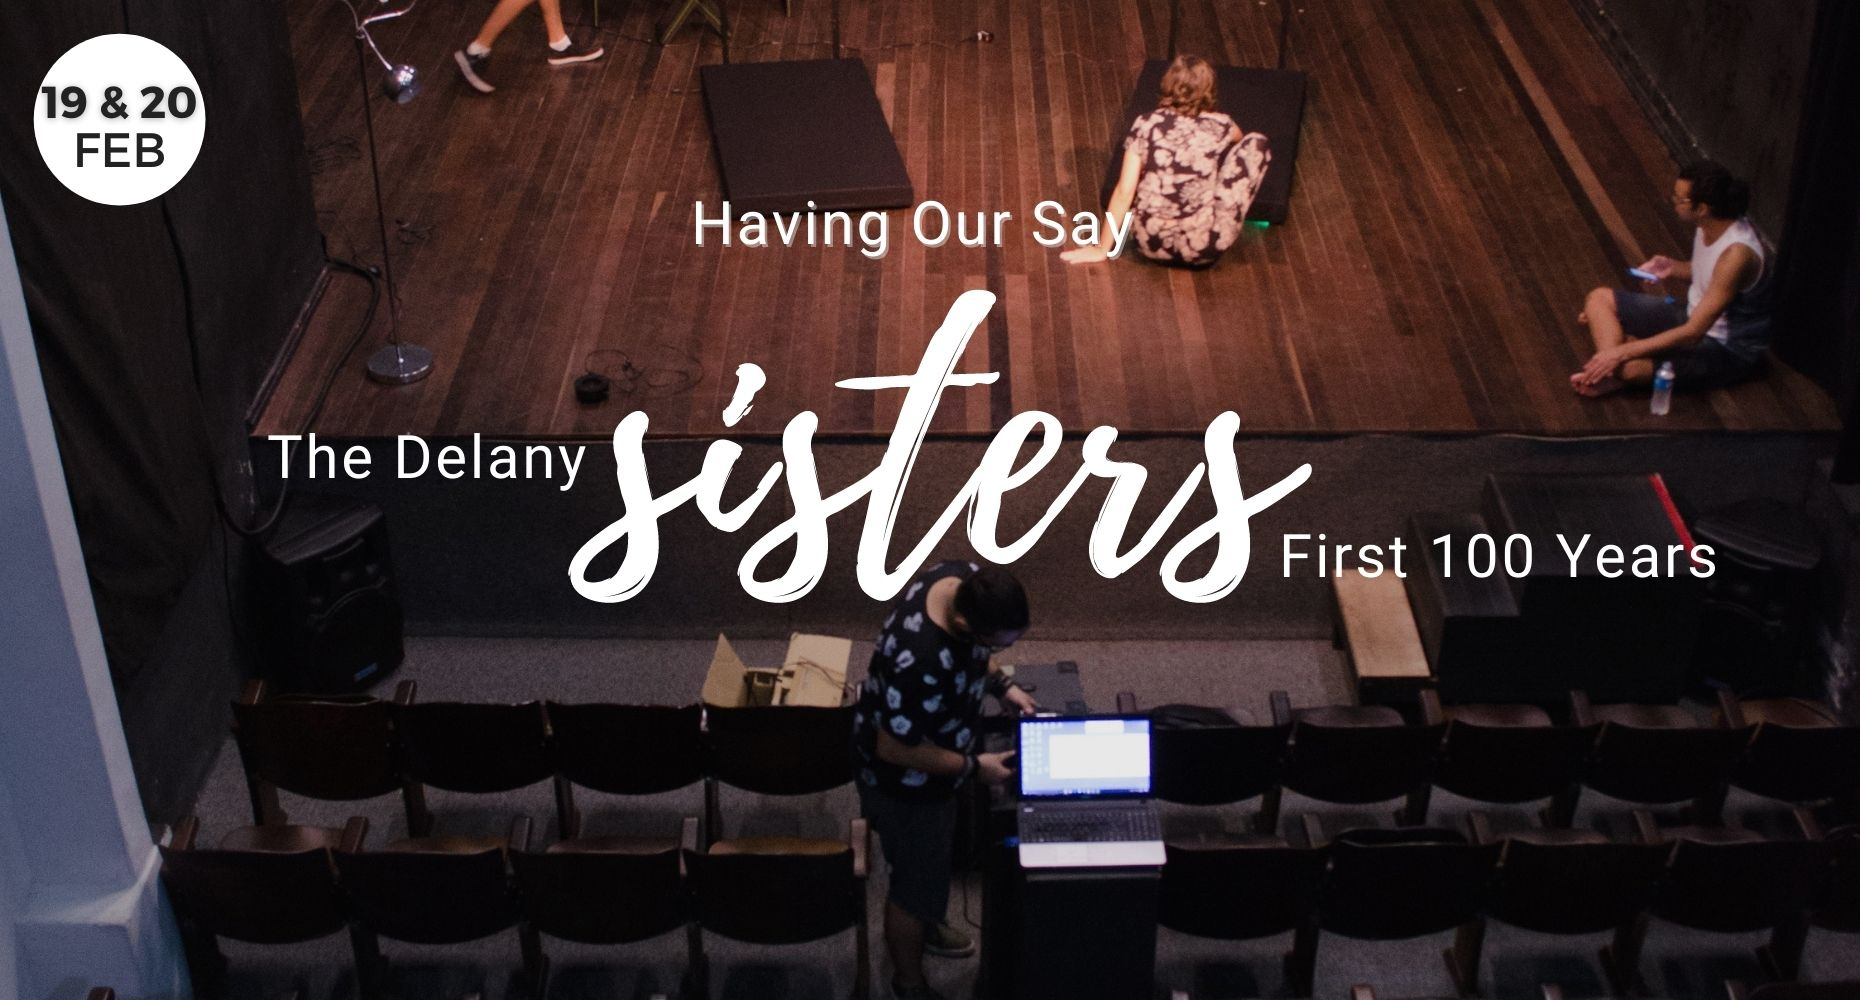 Having our Say the Delany Sisters, Whidbey playhouse, Whidbey Island, Oak Harbor, Washington, Events